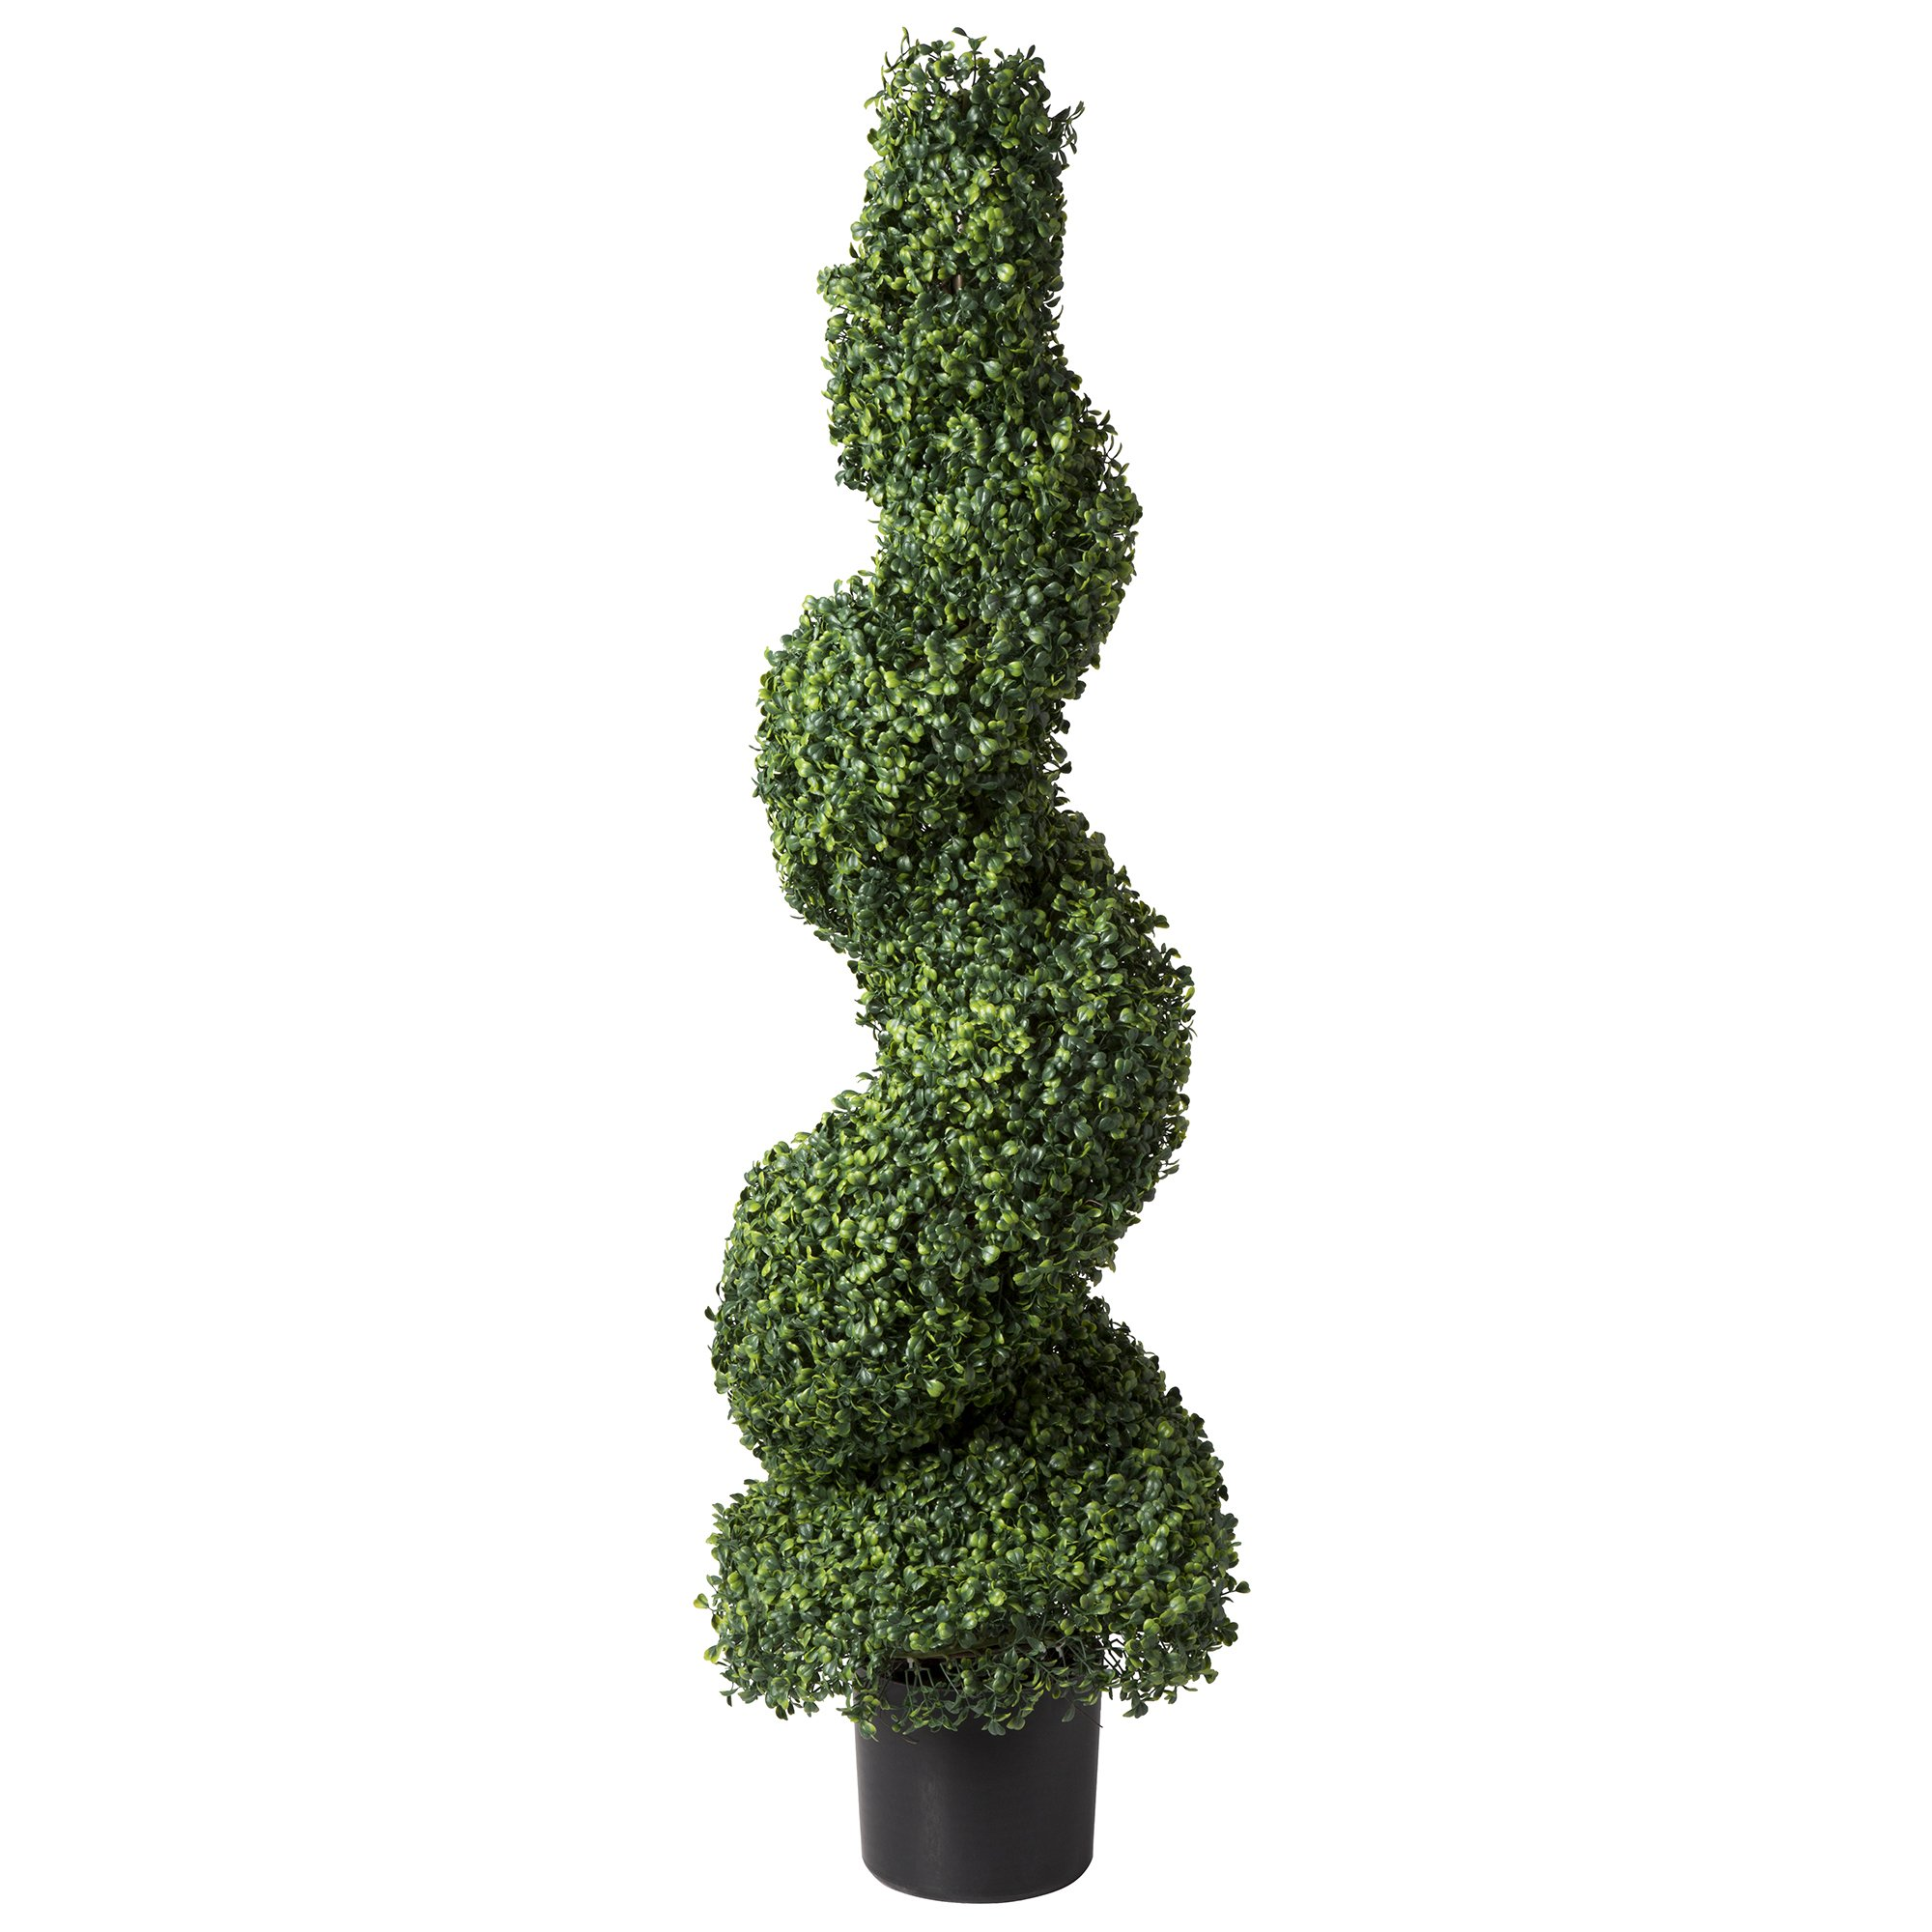 Artificial Boxwood Spiral Tree with Realistic Leaves, Beautiful Faux Plant for Indoor-Outdoor Home Décor-50-inch Topiary with Planter by Pure Garden by Pure Garden